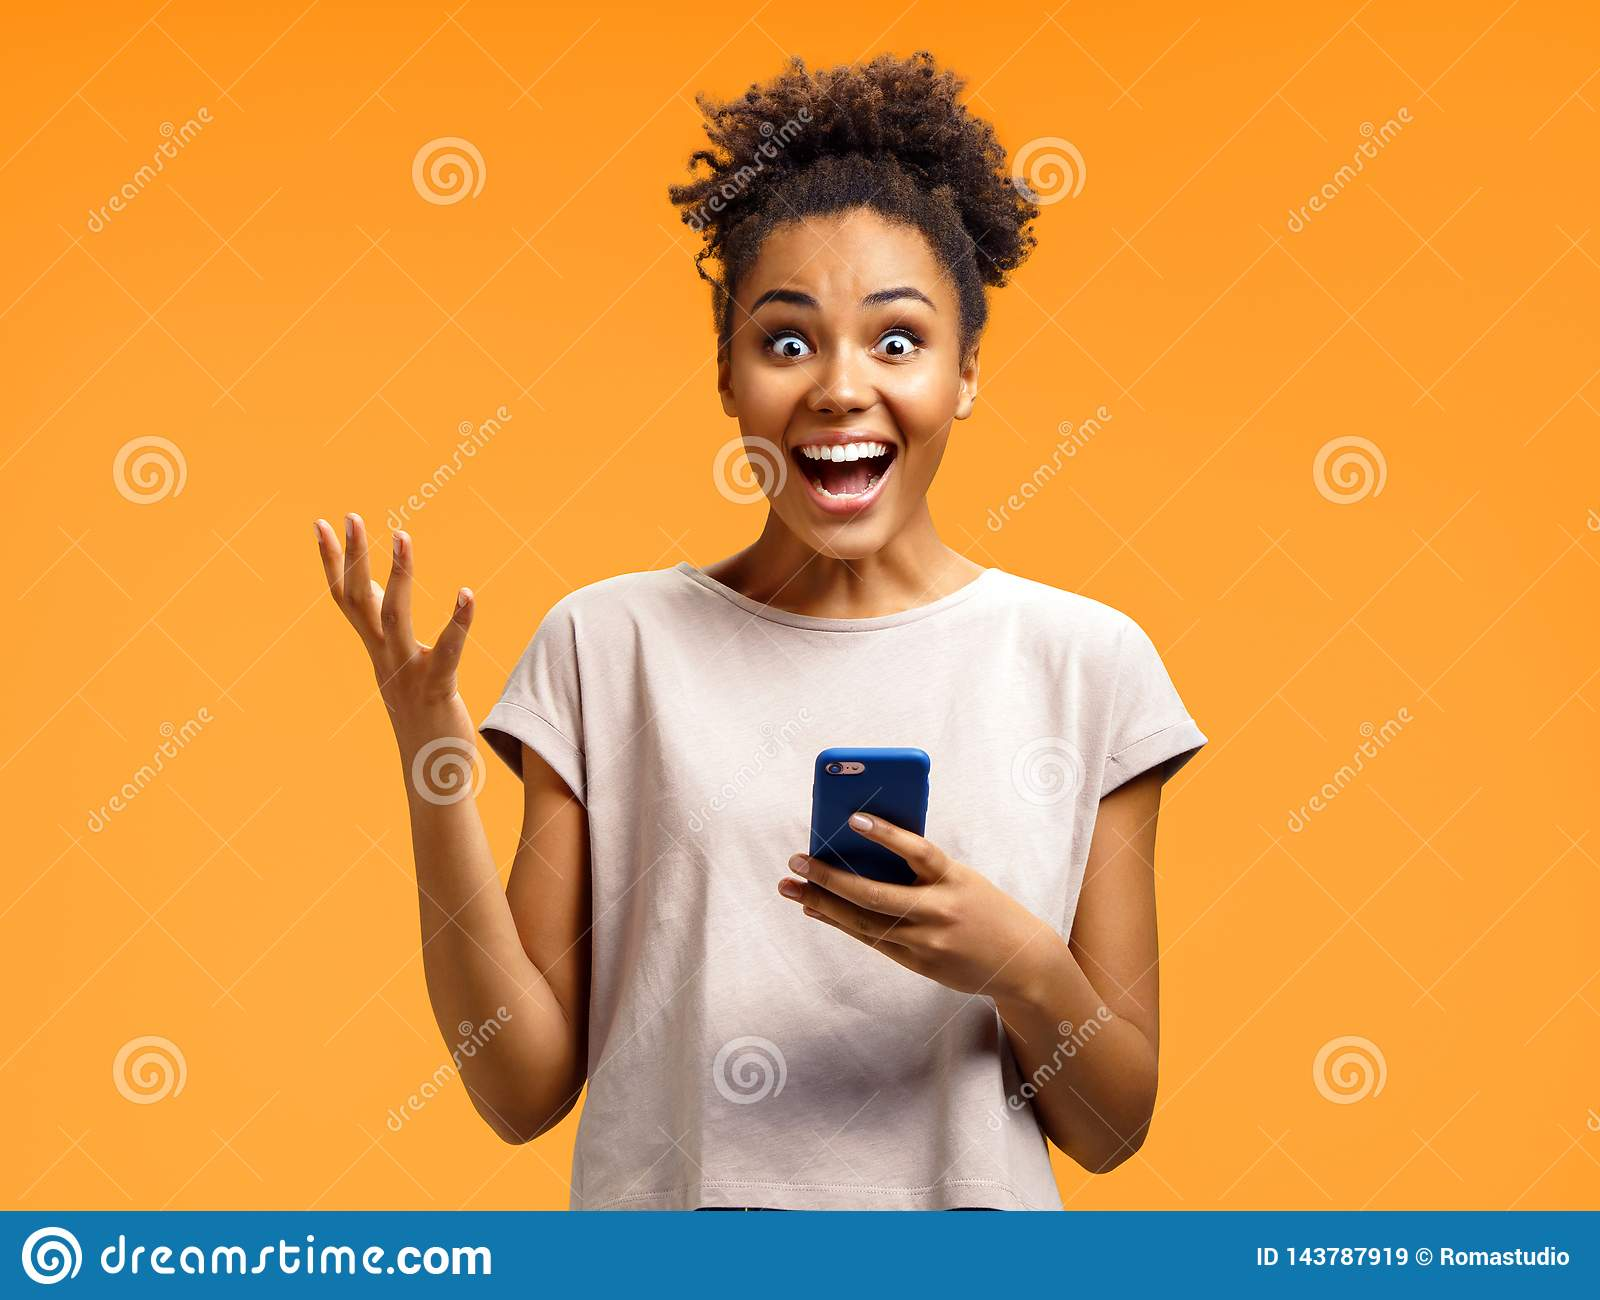 Amazed girl holds smartphone, happy to receive notification, gestures actively from happiness.